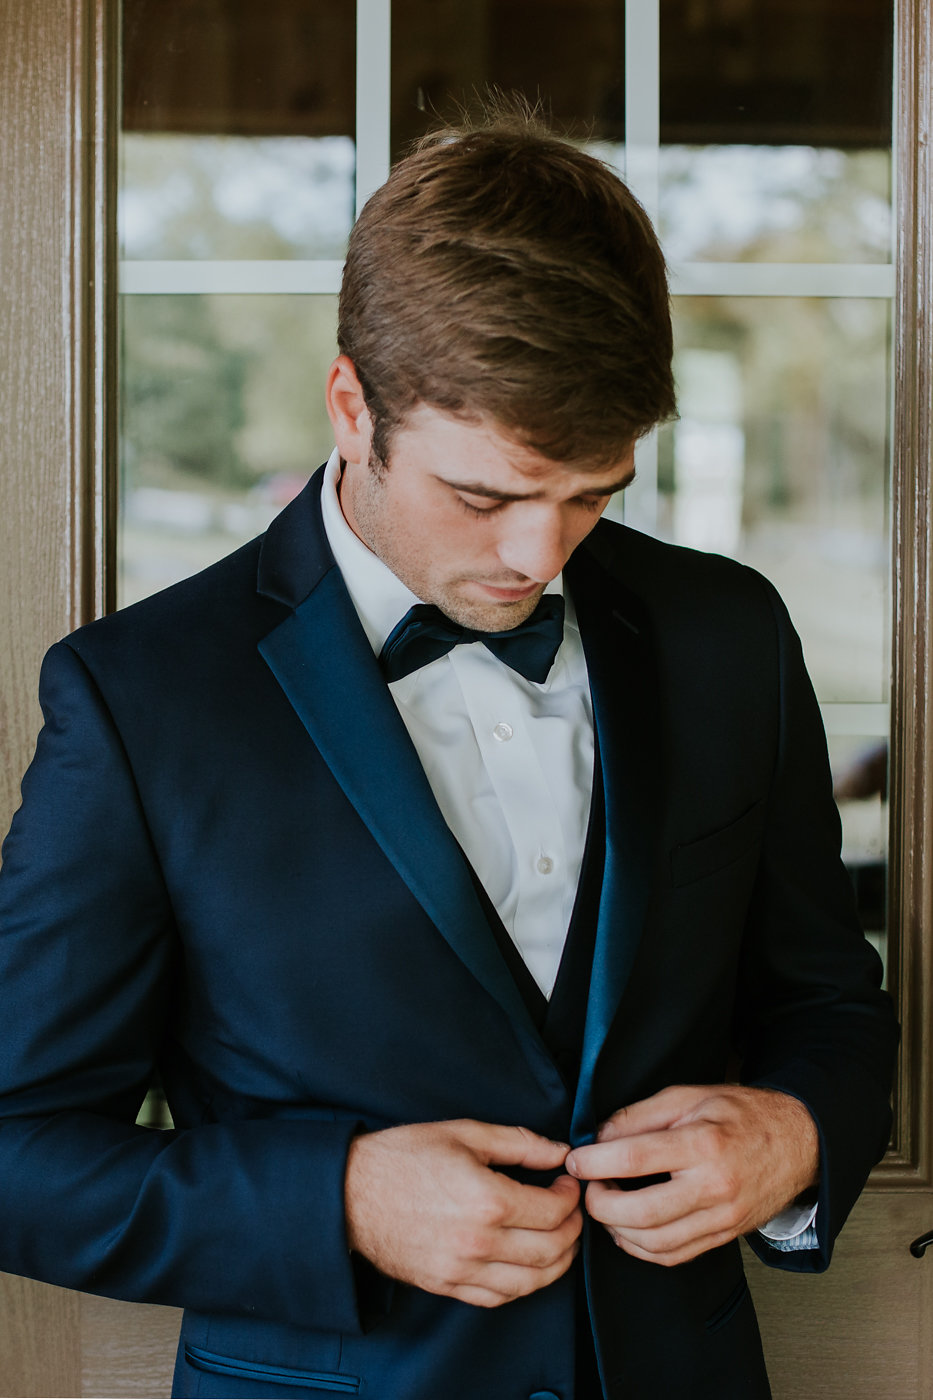 Navy Groom's Suit - North Carolina Wedding Venue - Triple J Manor House Wedding